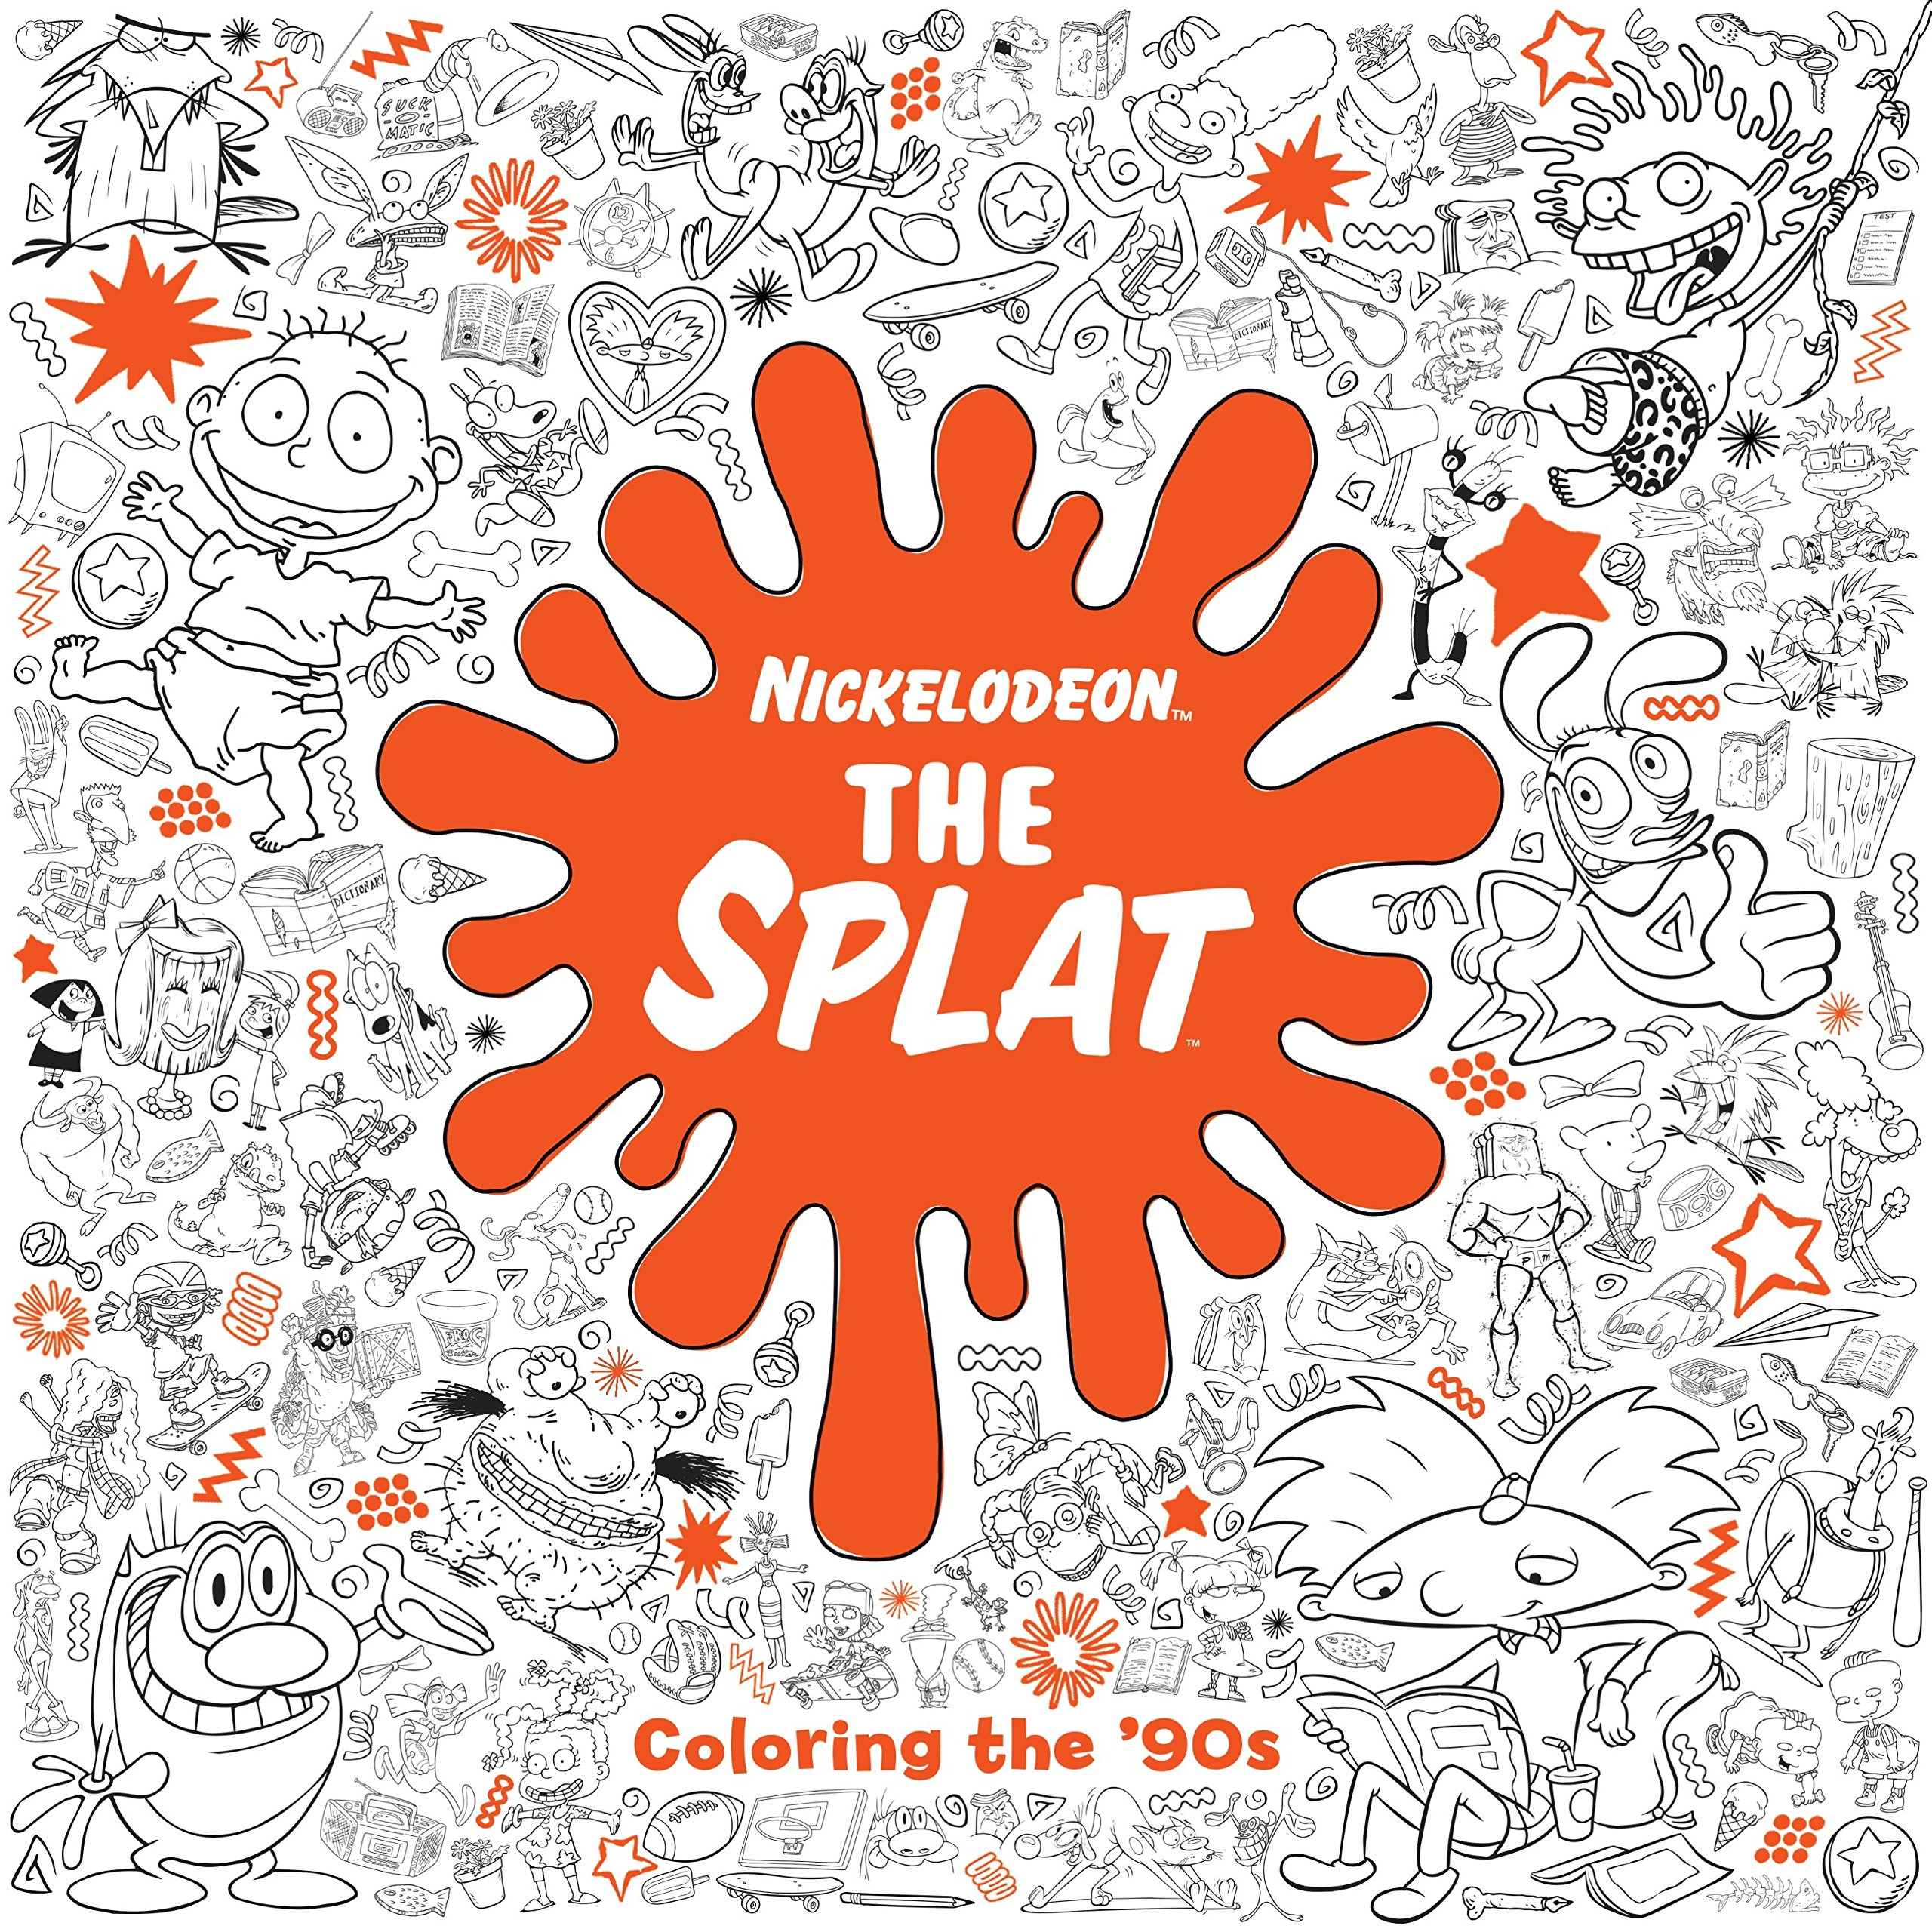 Amazon.com: The Splat: Coloring the \'90s (Nickelodeon) (Adult ...